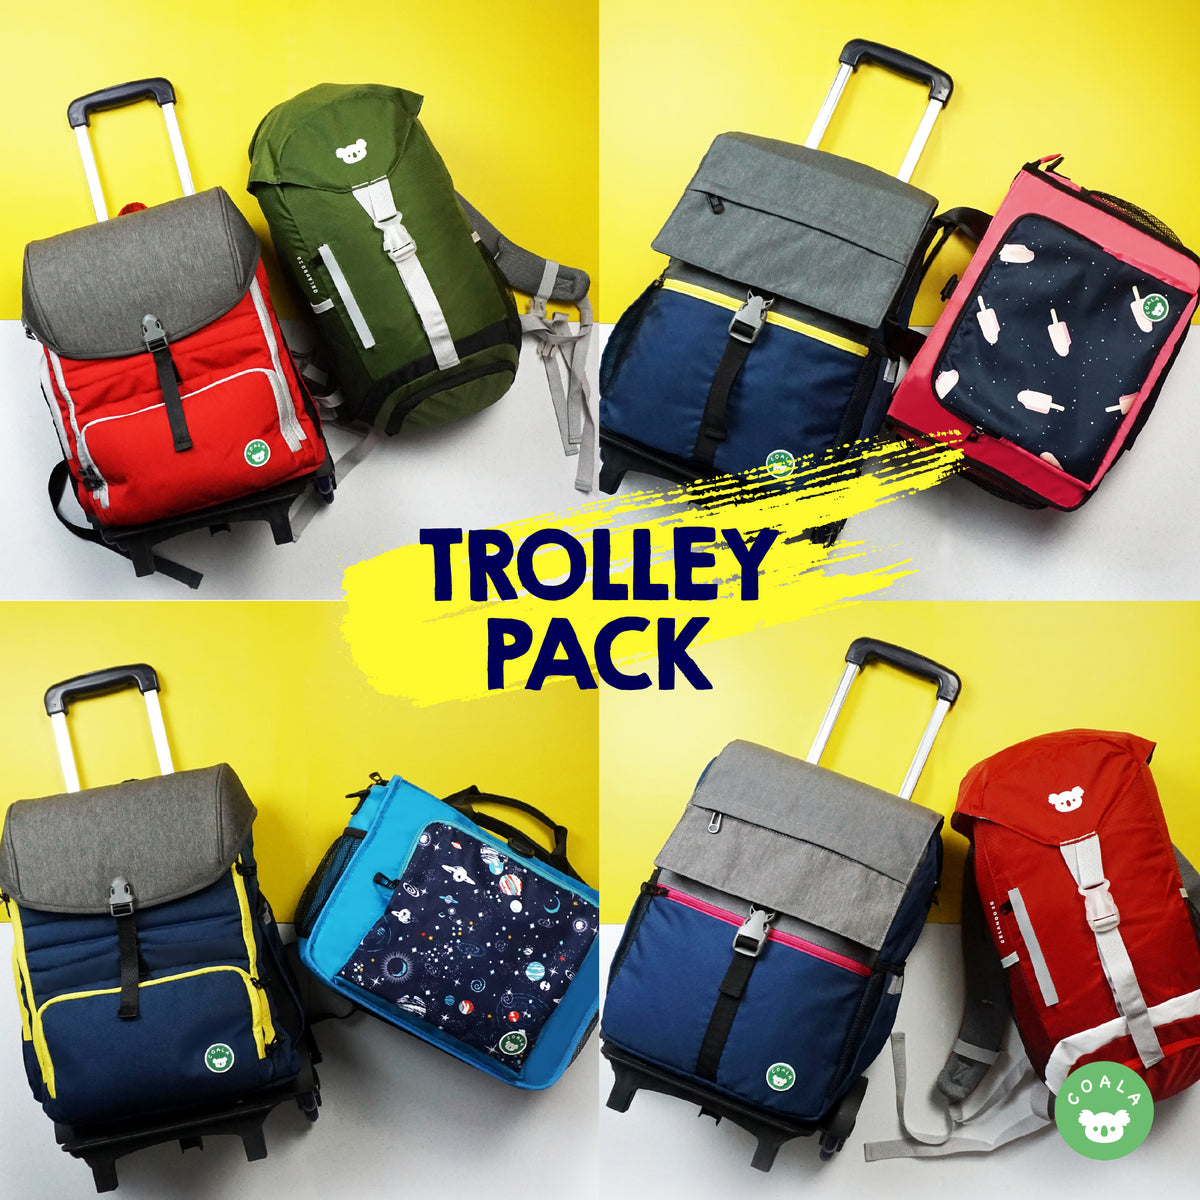 Coala™ Smart Combo -- TROLLEY PACK